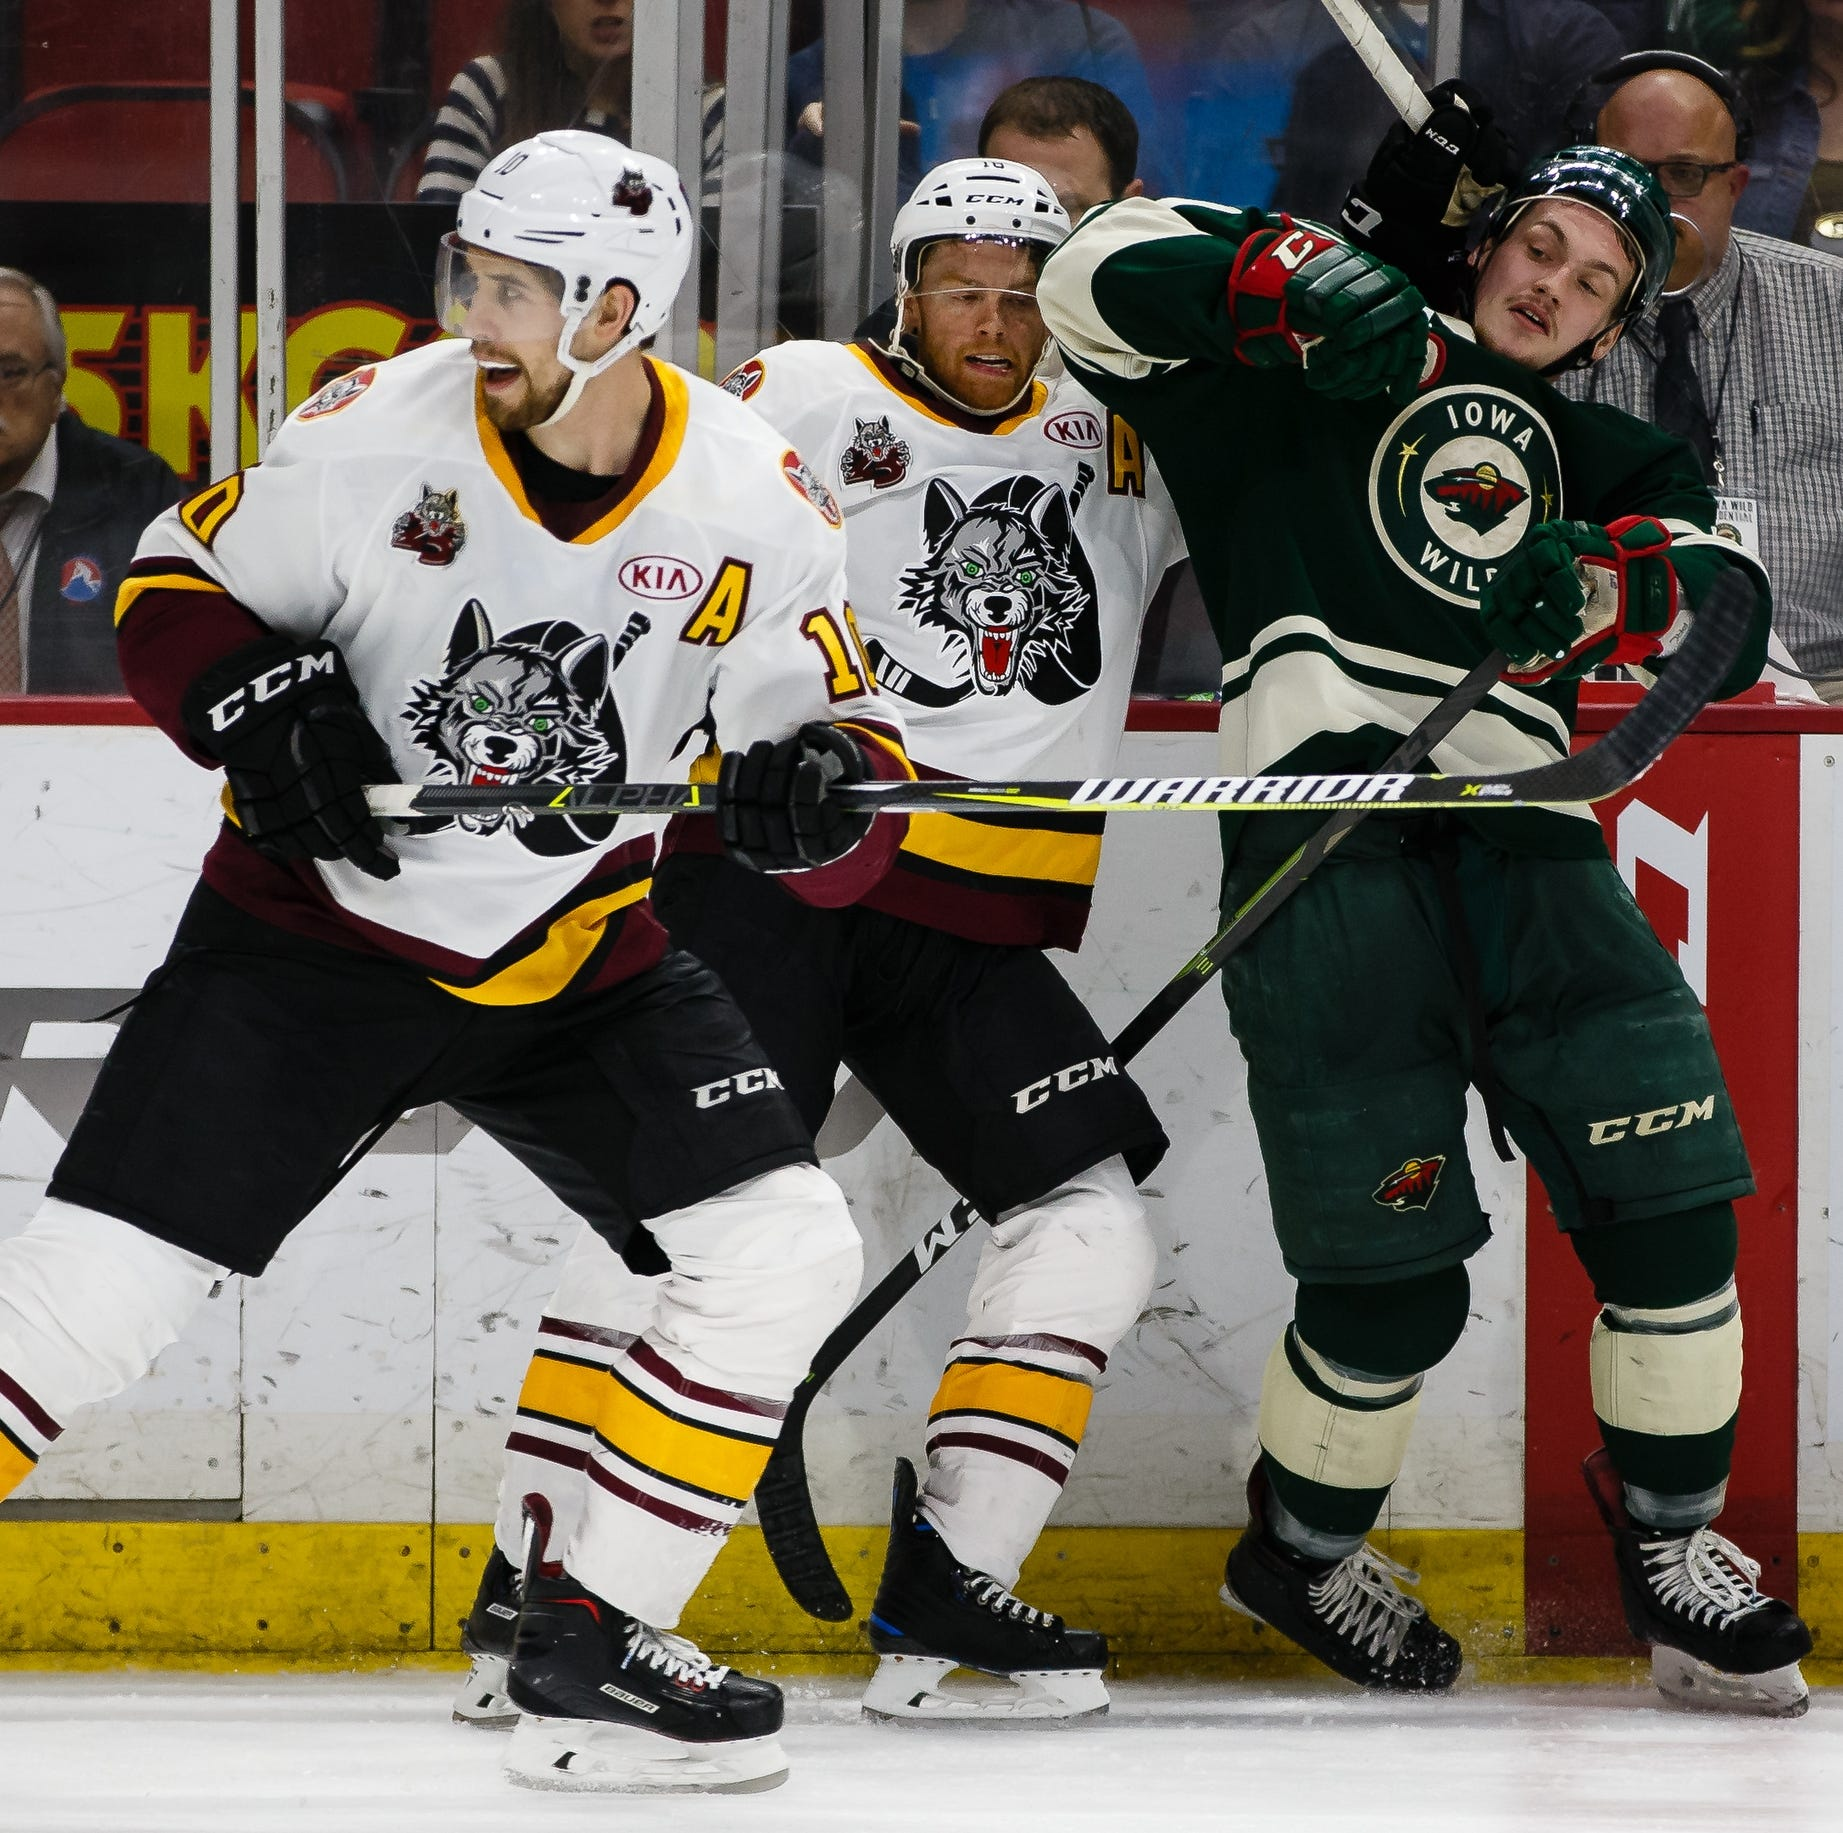 Chicago controls Iowa Wild in crucial Game 5, now controls fate of AHL playoff series